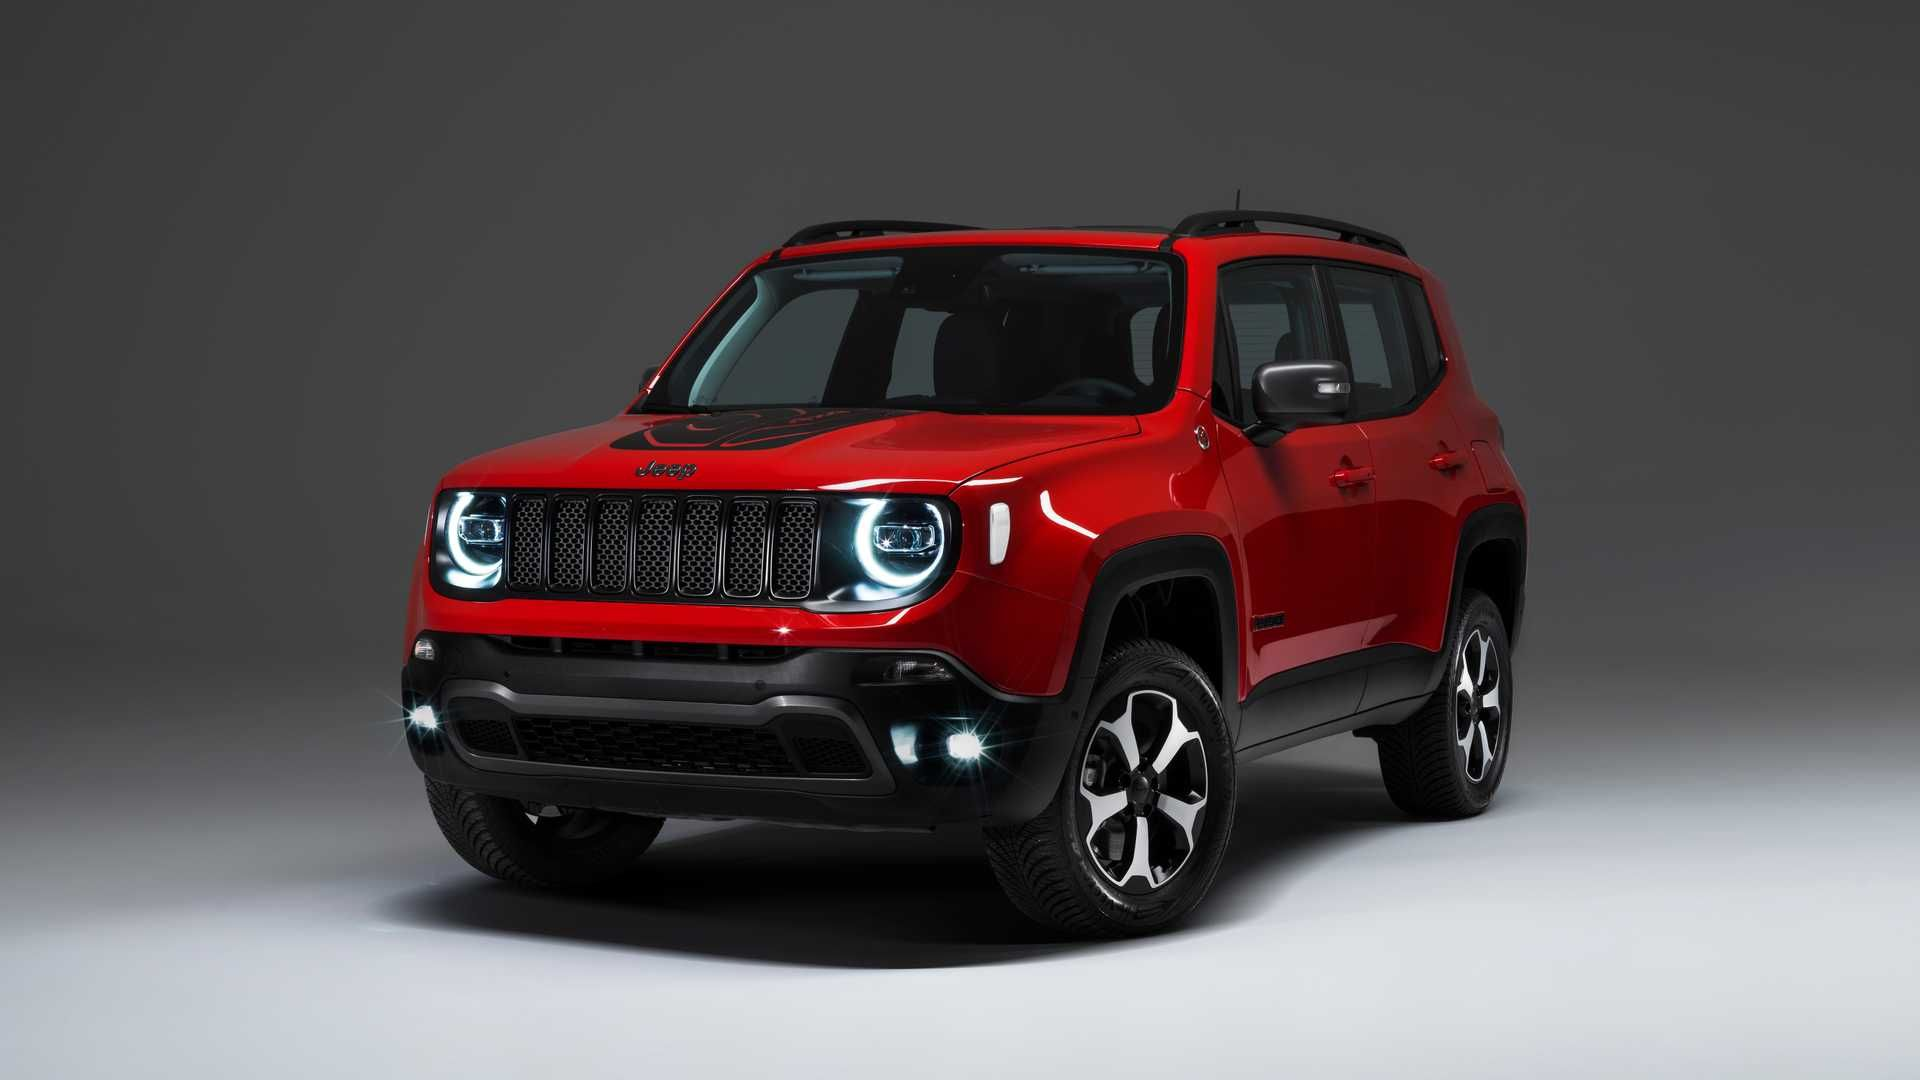 2019 Jeep Renegade Plug In Hybrid Motor1 Com Photos Jeep Renegade Jeep Suv